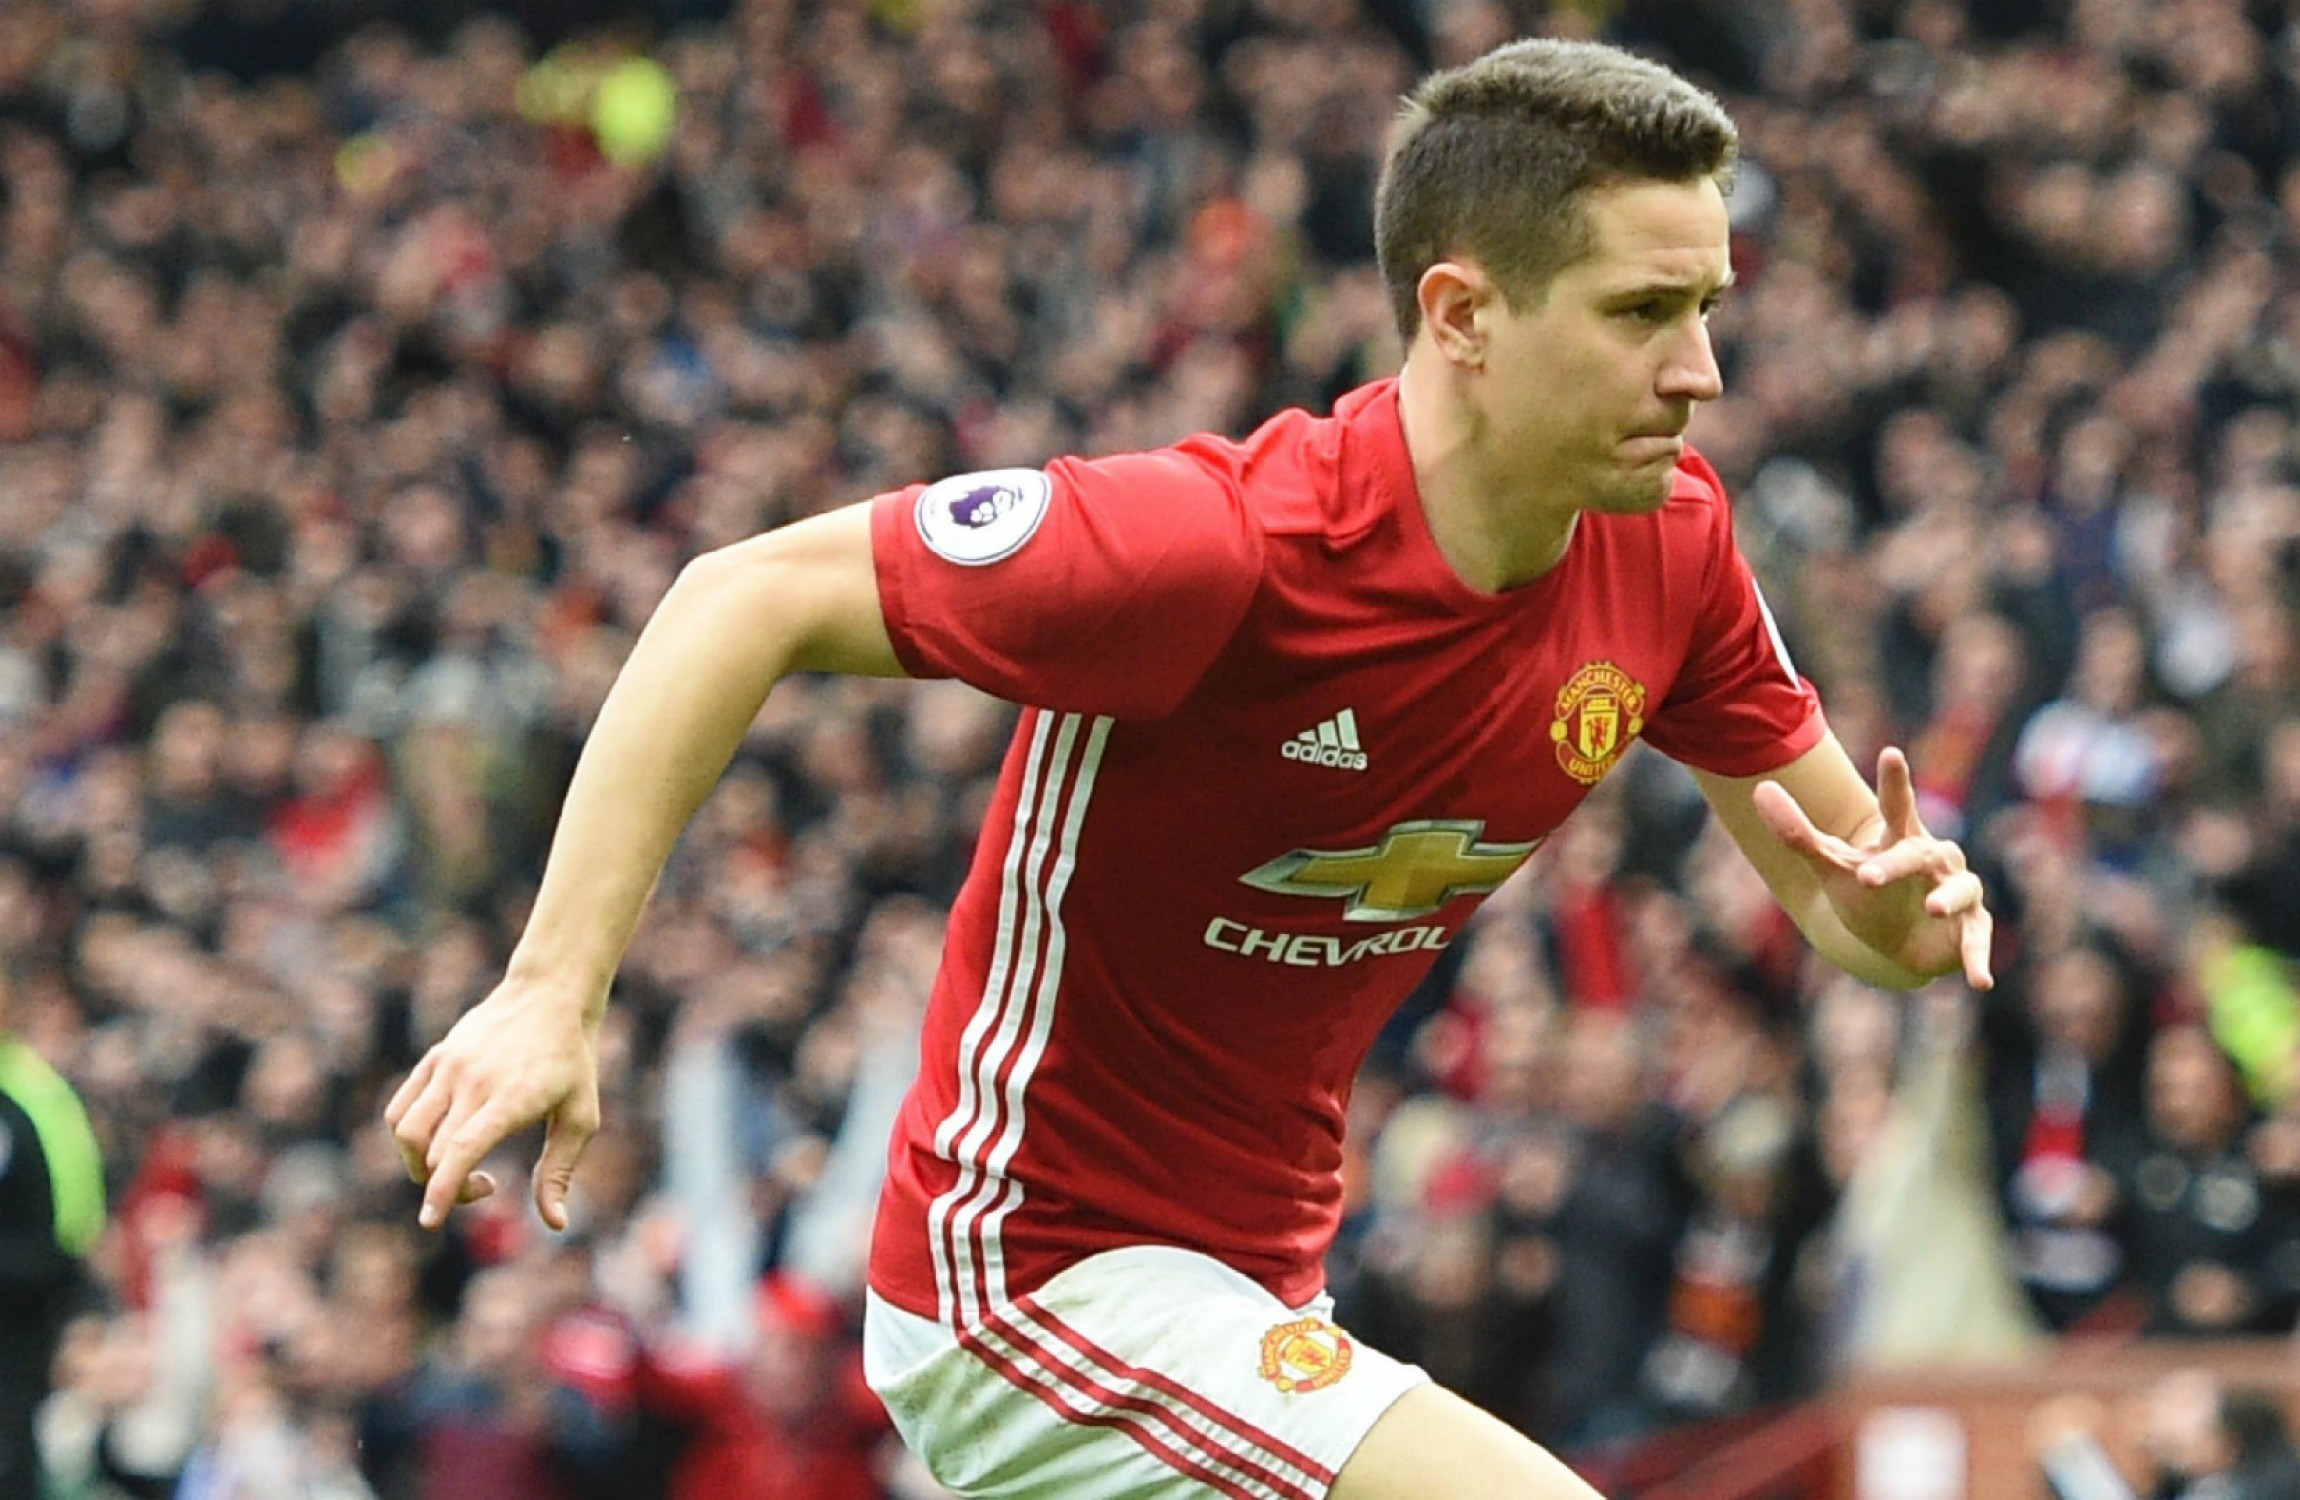 Ander Herrera Is United's Player Of The Year